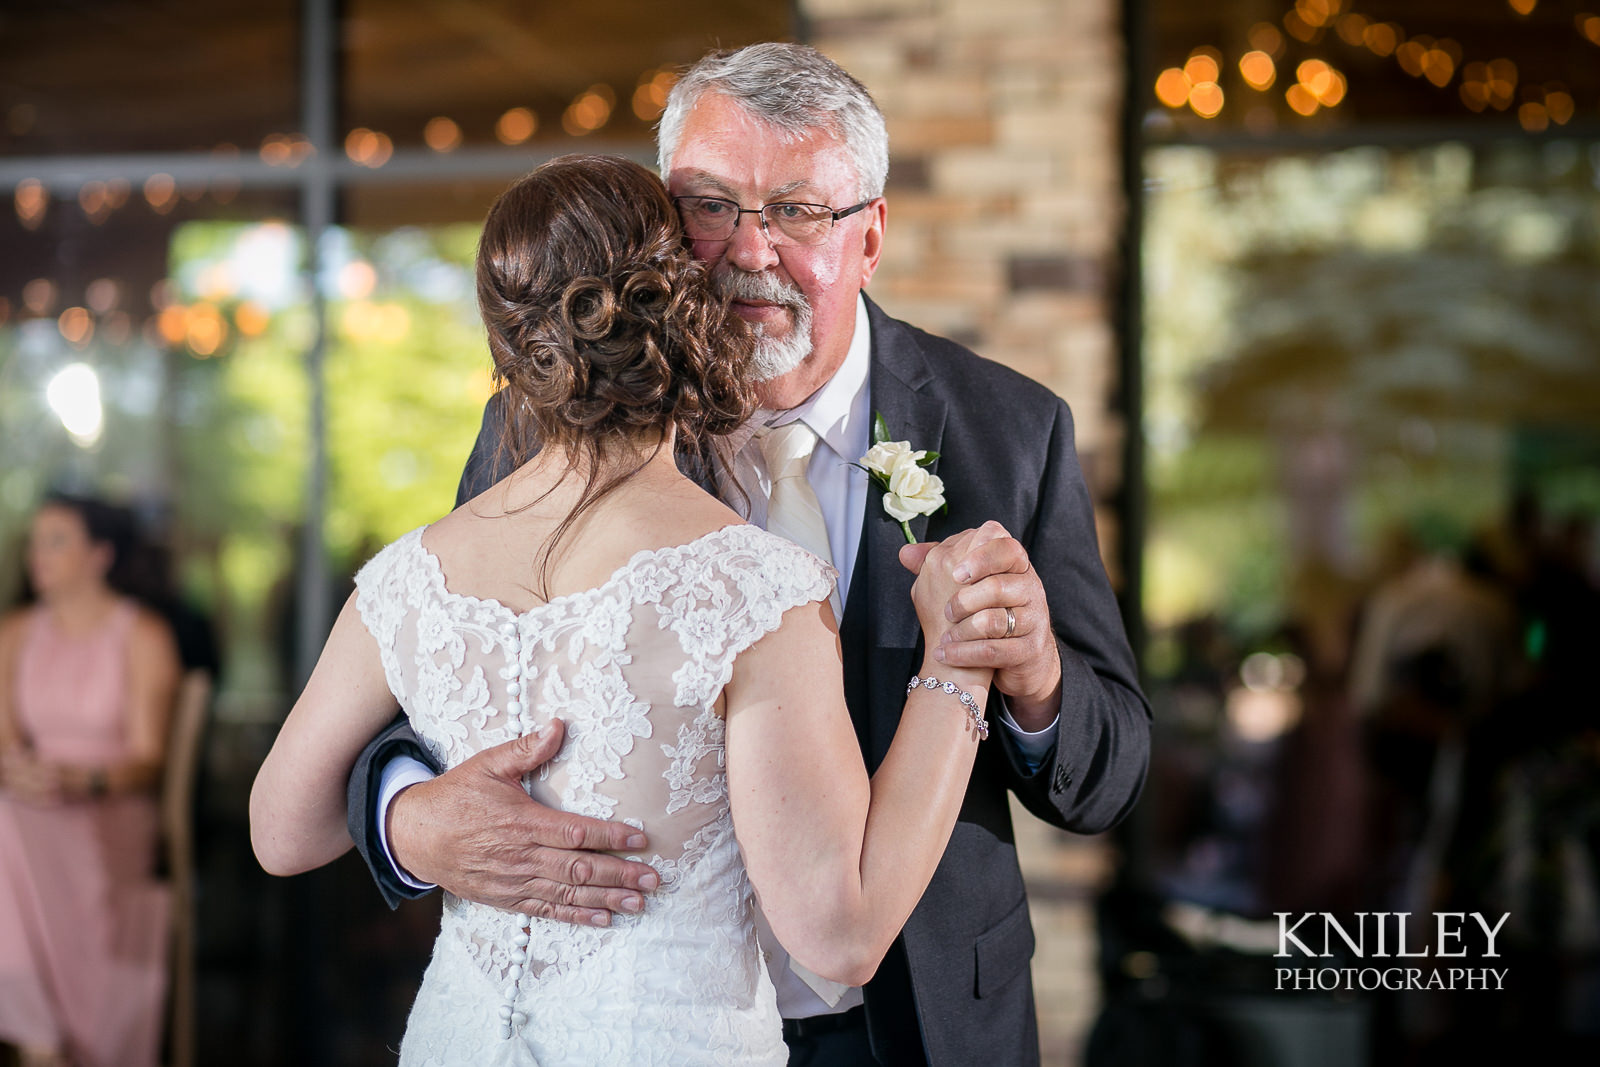 109 - Ravenwood Golf Club wedding pictures - Rochester NY - Kniley Photography - IMG_9704.jpg